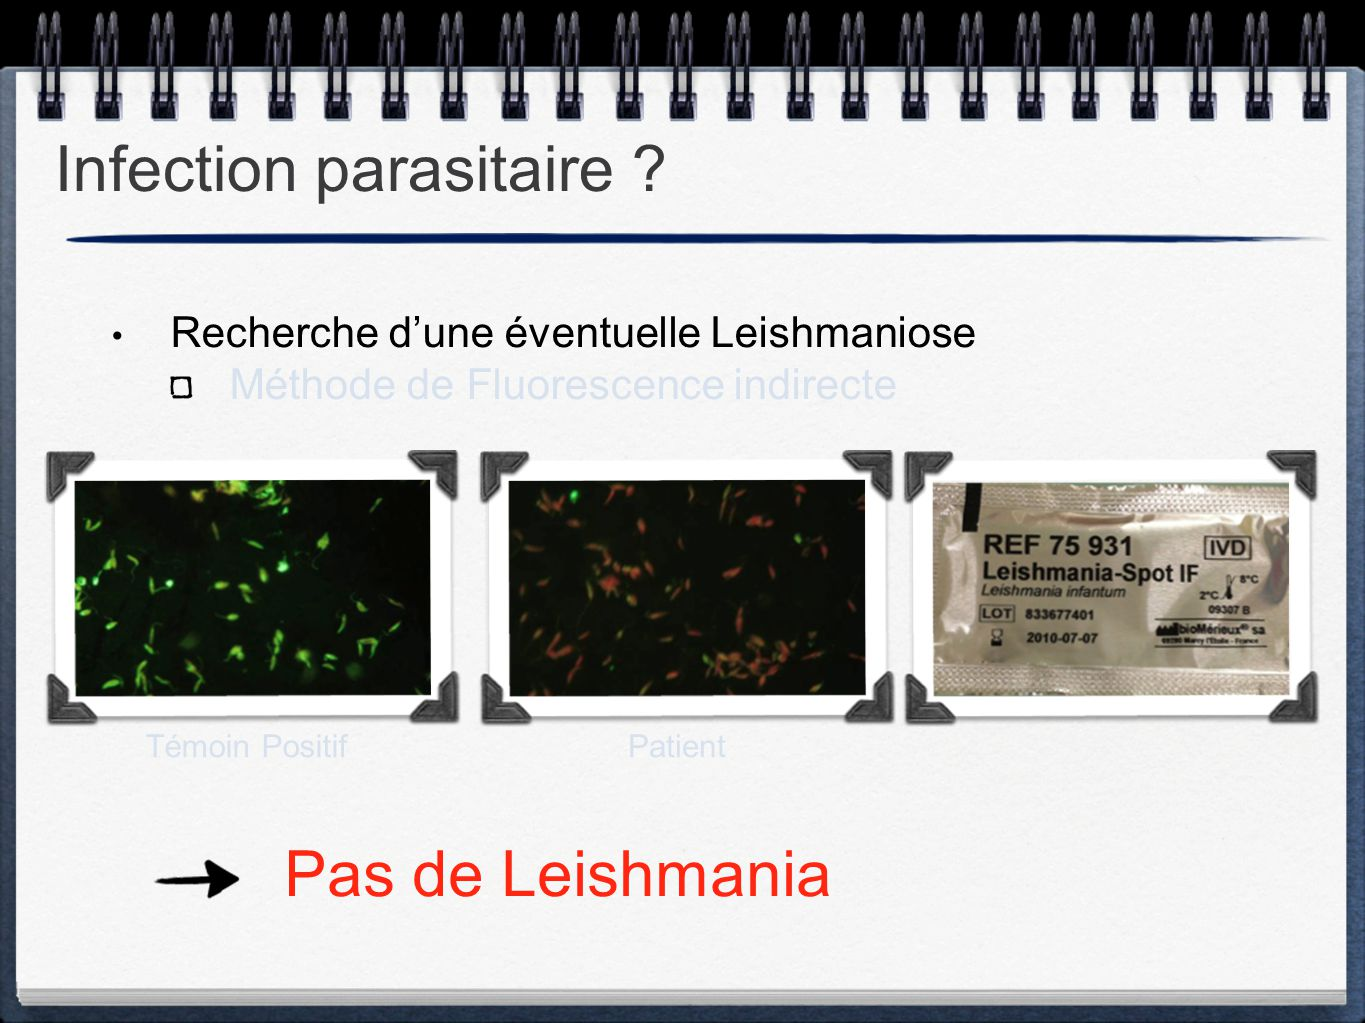 Infection parasitaire